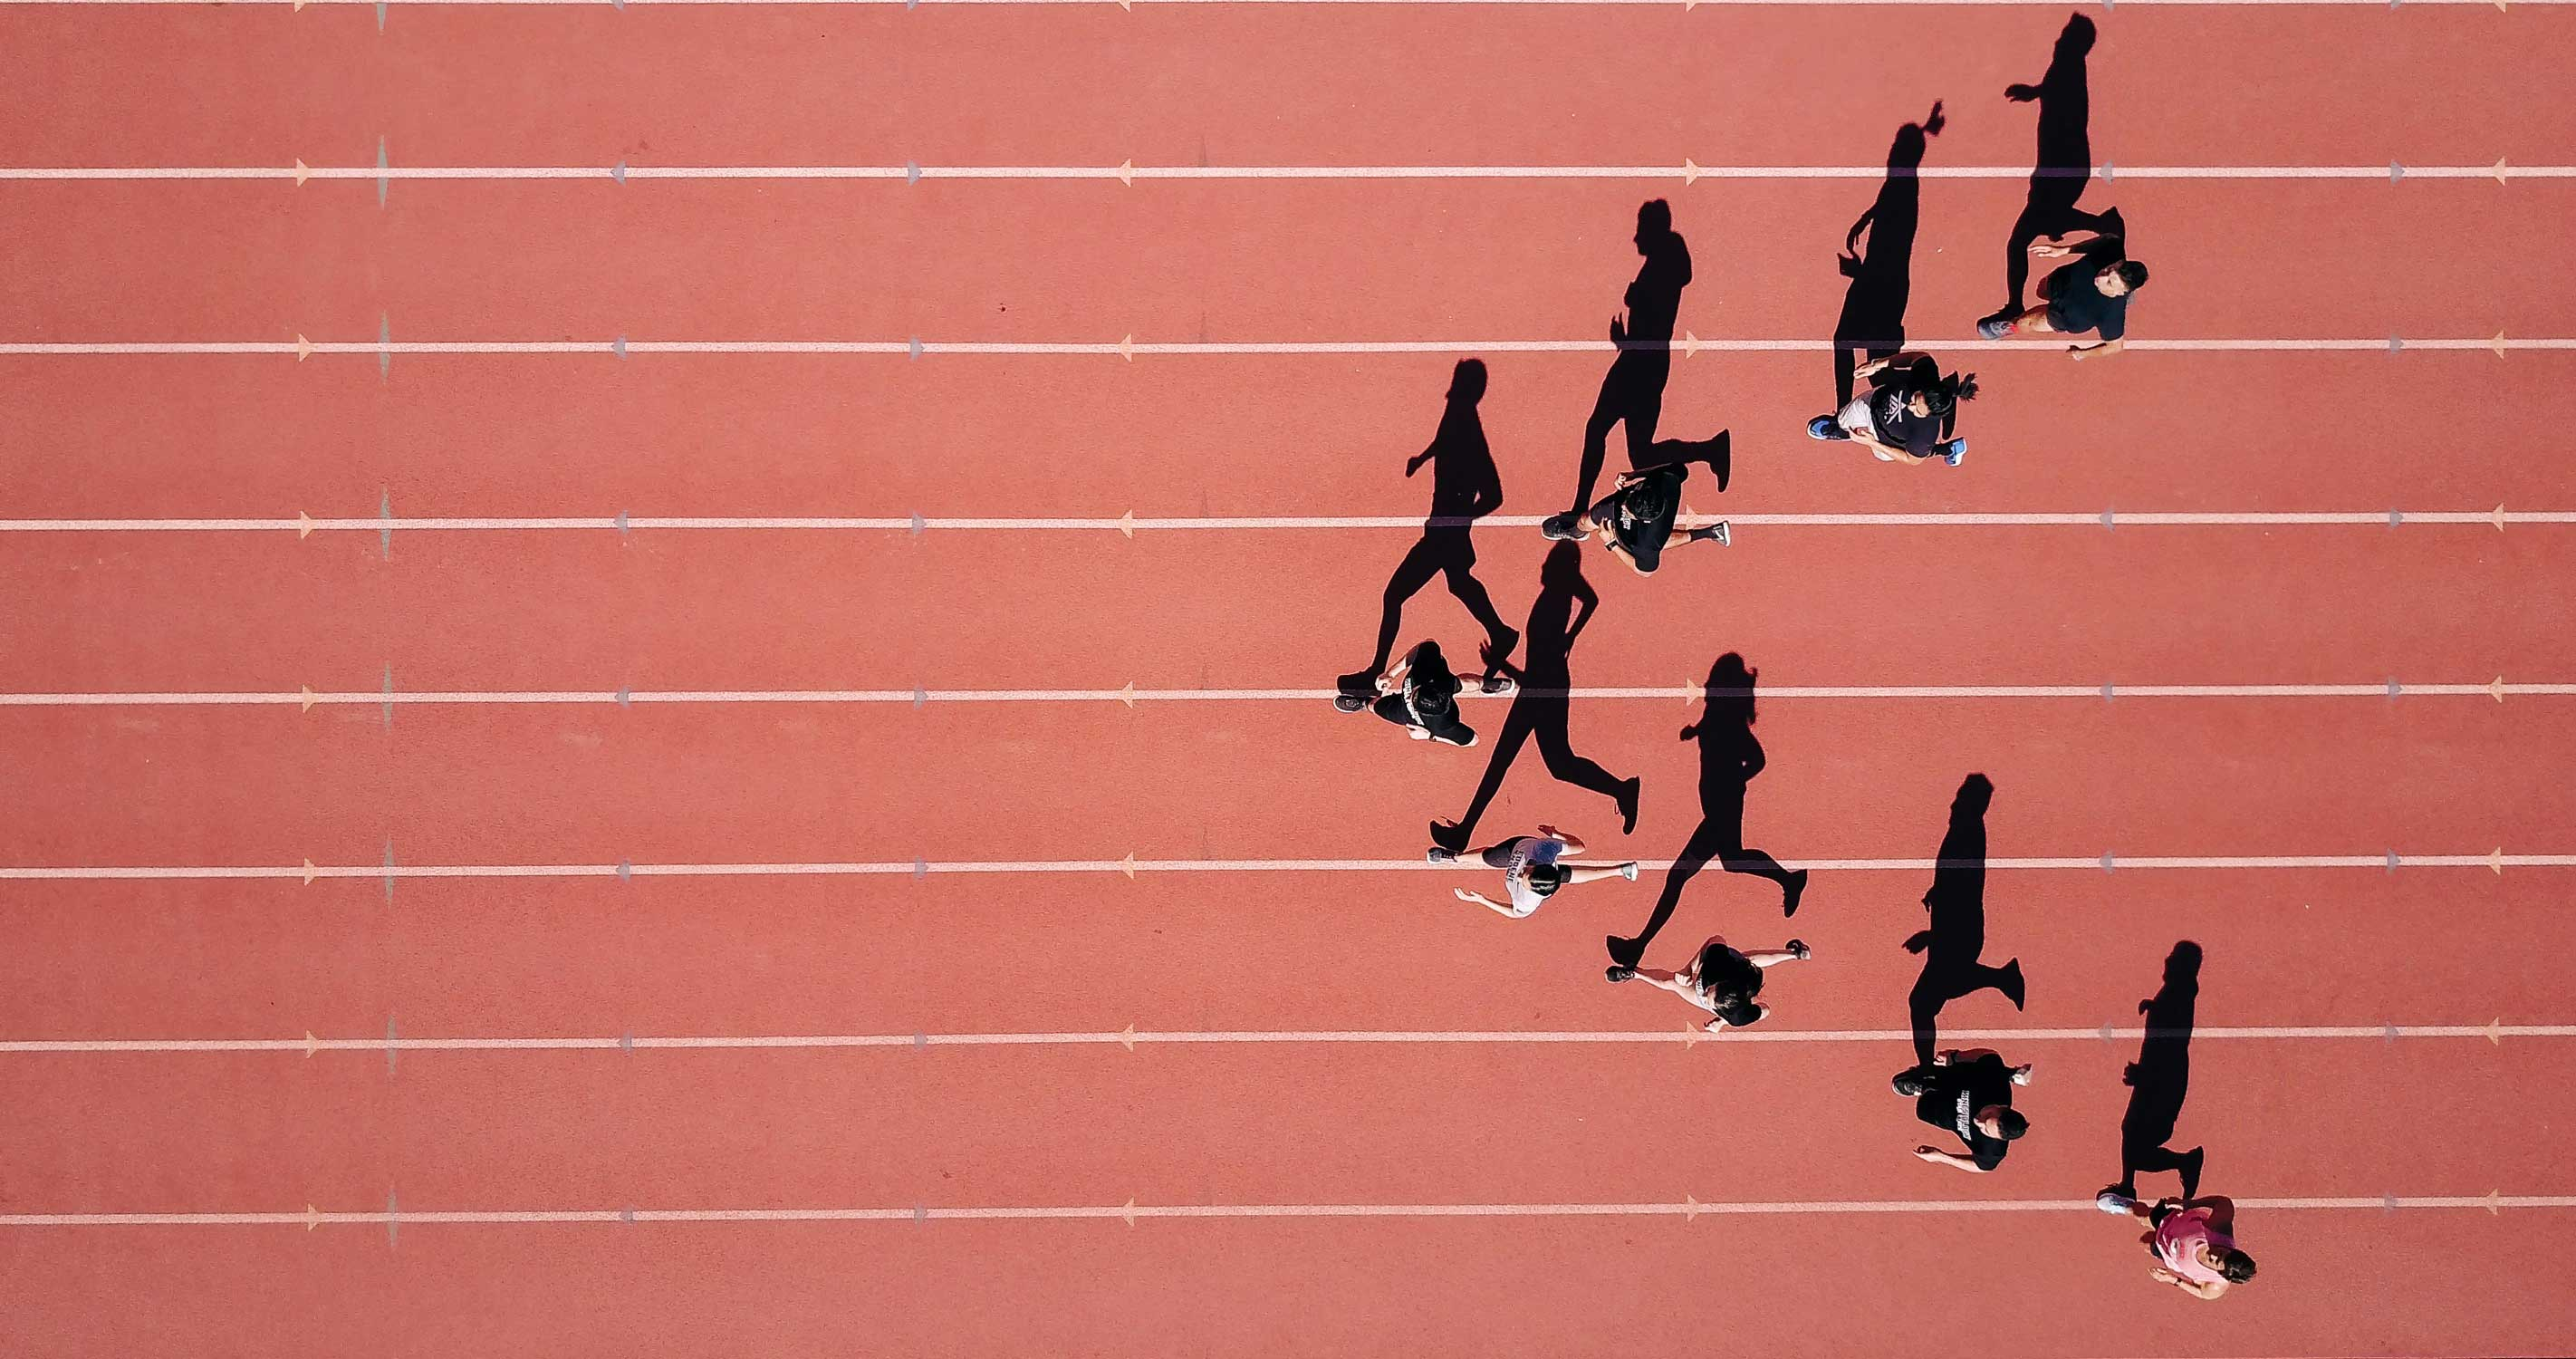 people running on a track from a birds eye view